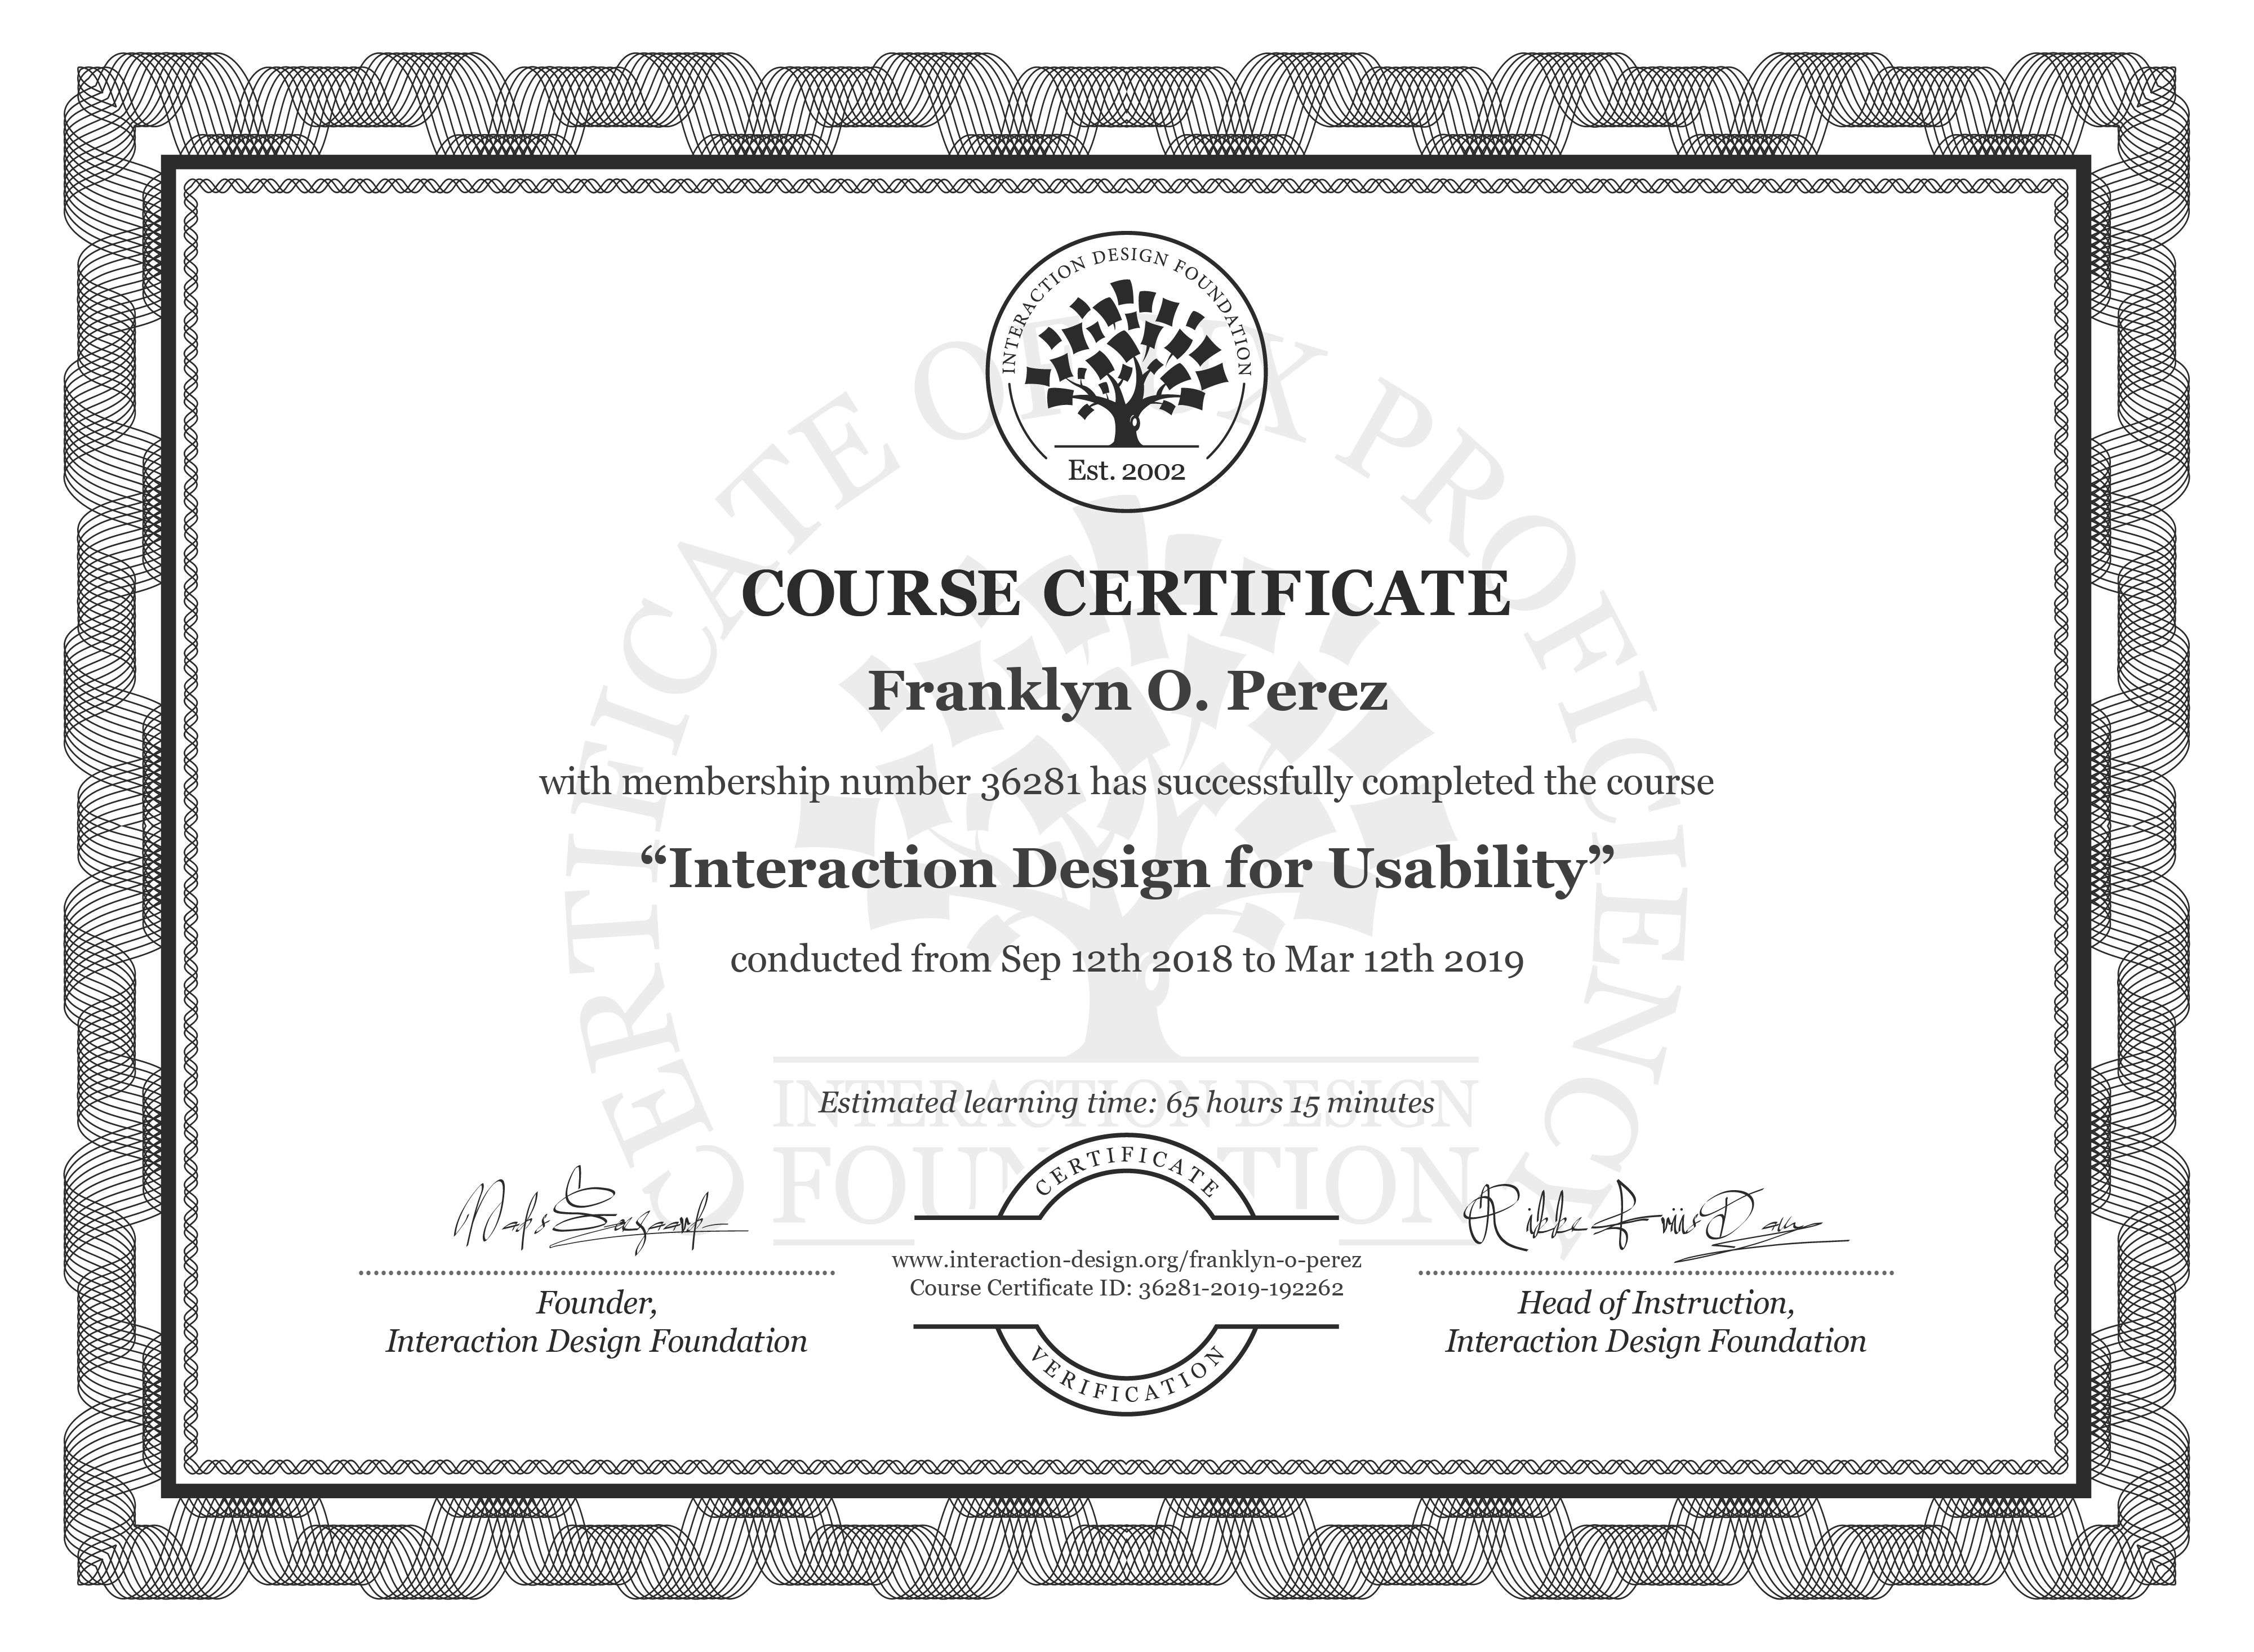 Franklyn O. Perez: Course Certificate - Interaction Design for Usability